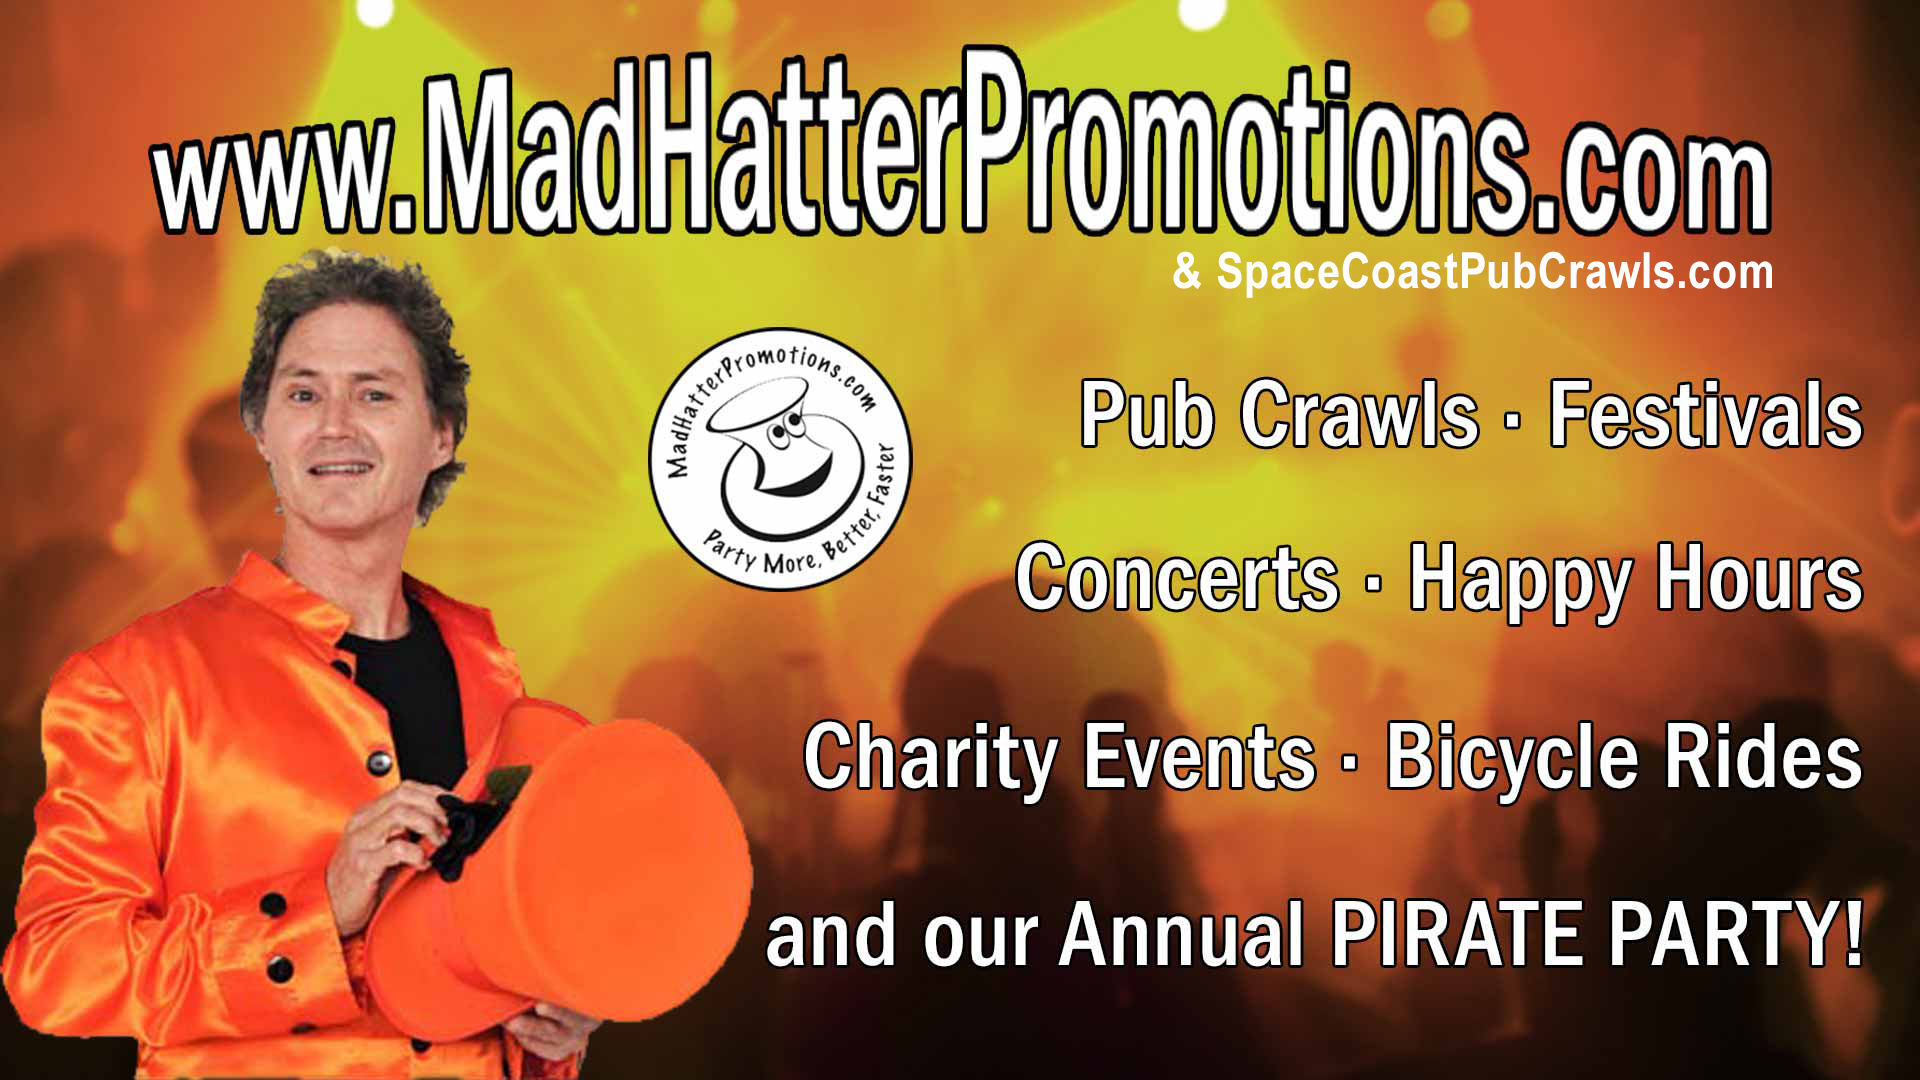 MadHatter Promotions by Gary Haas